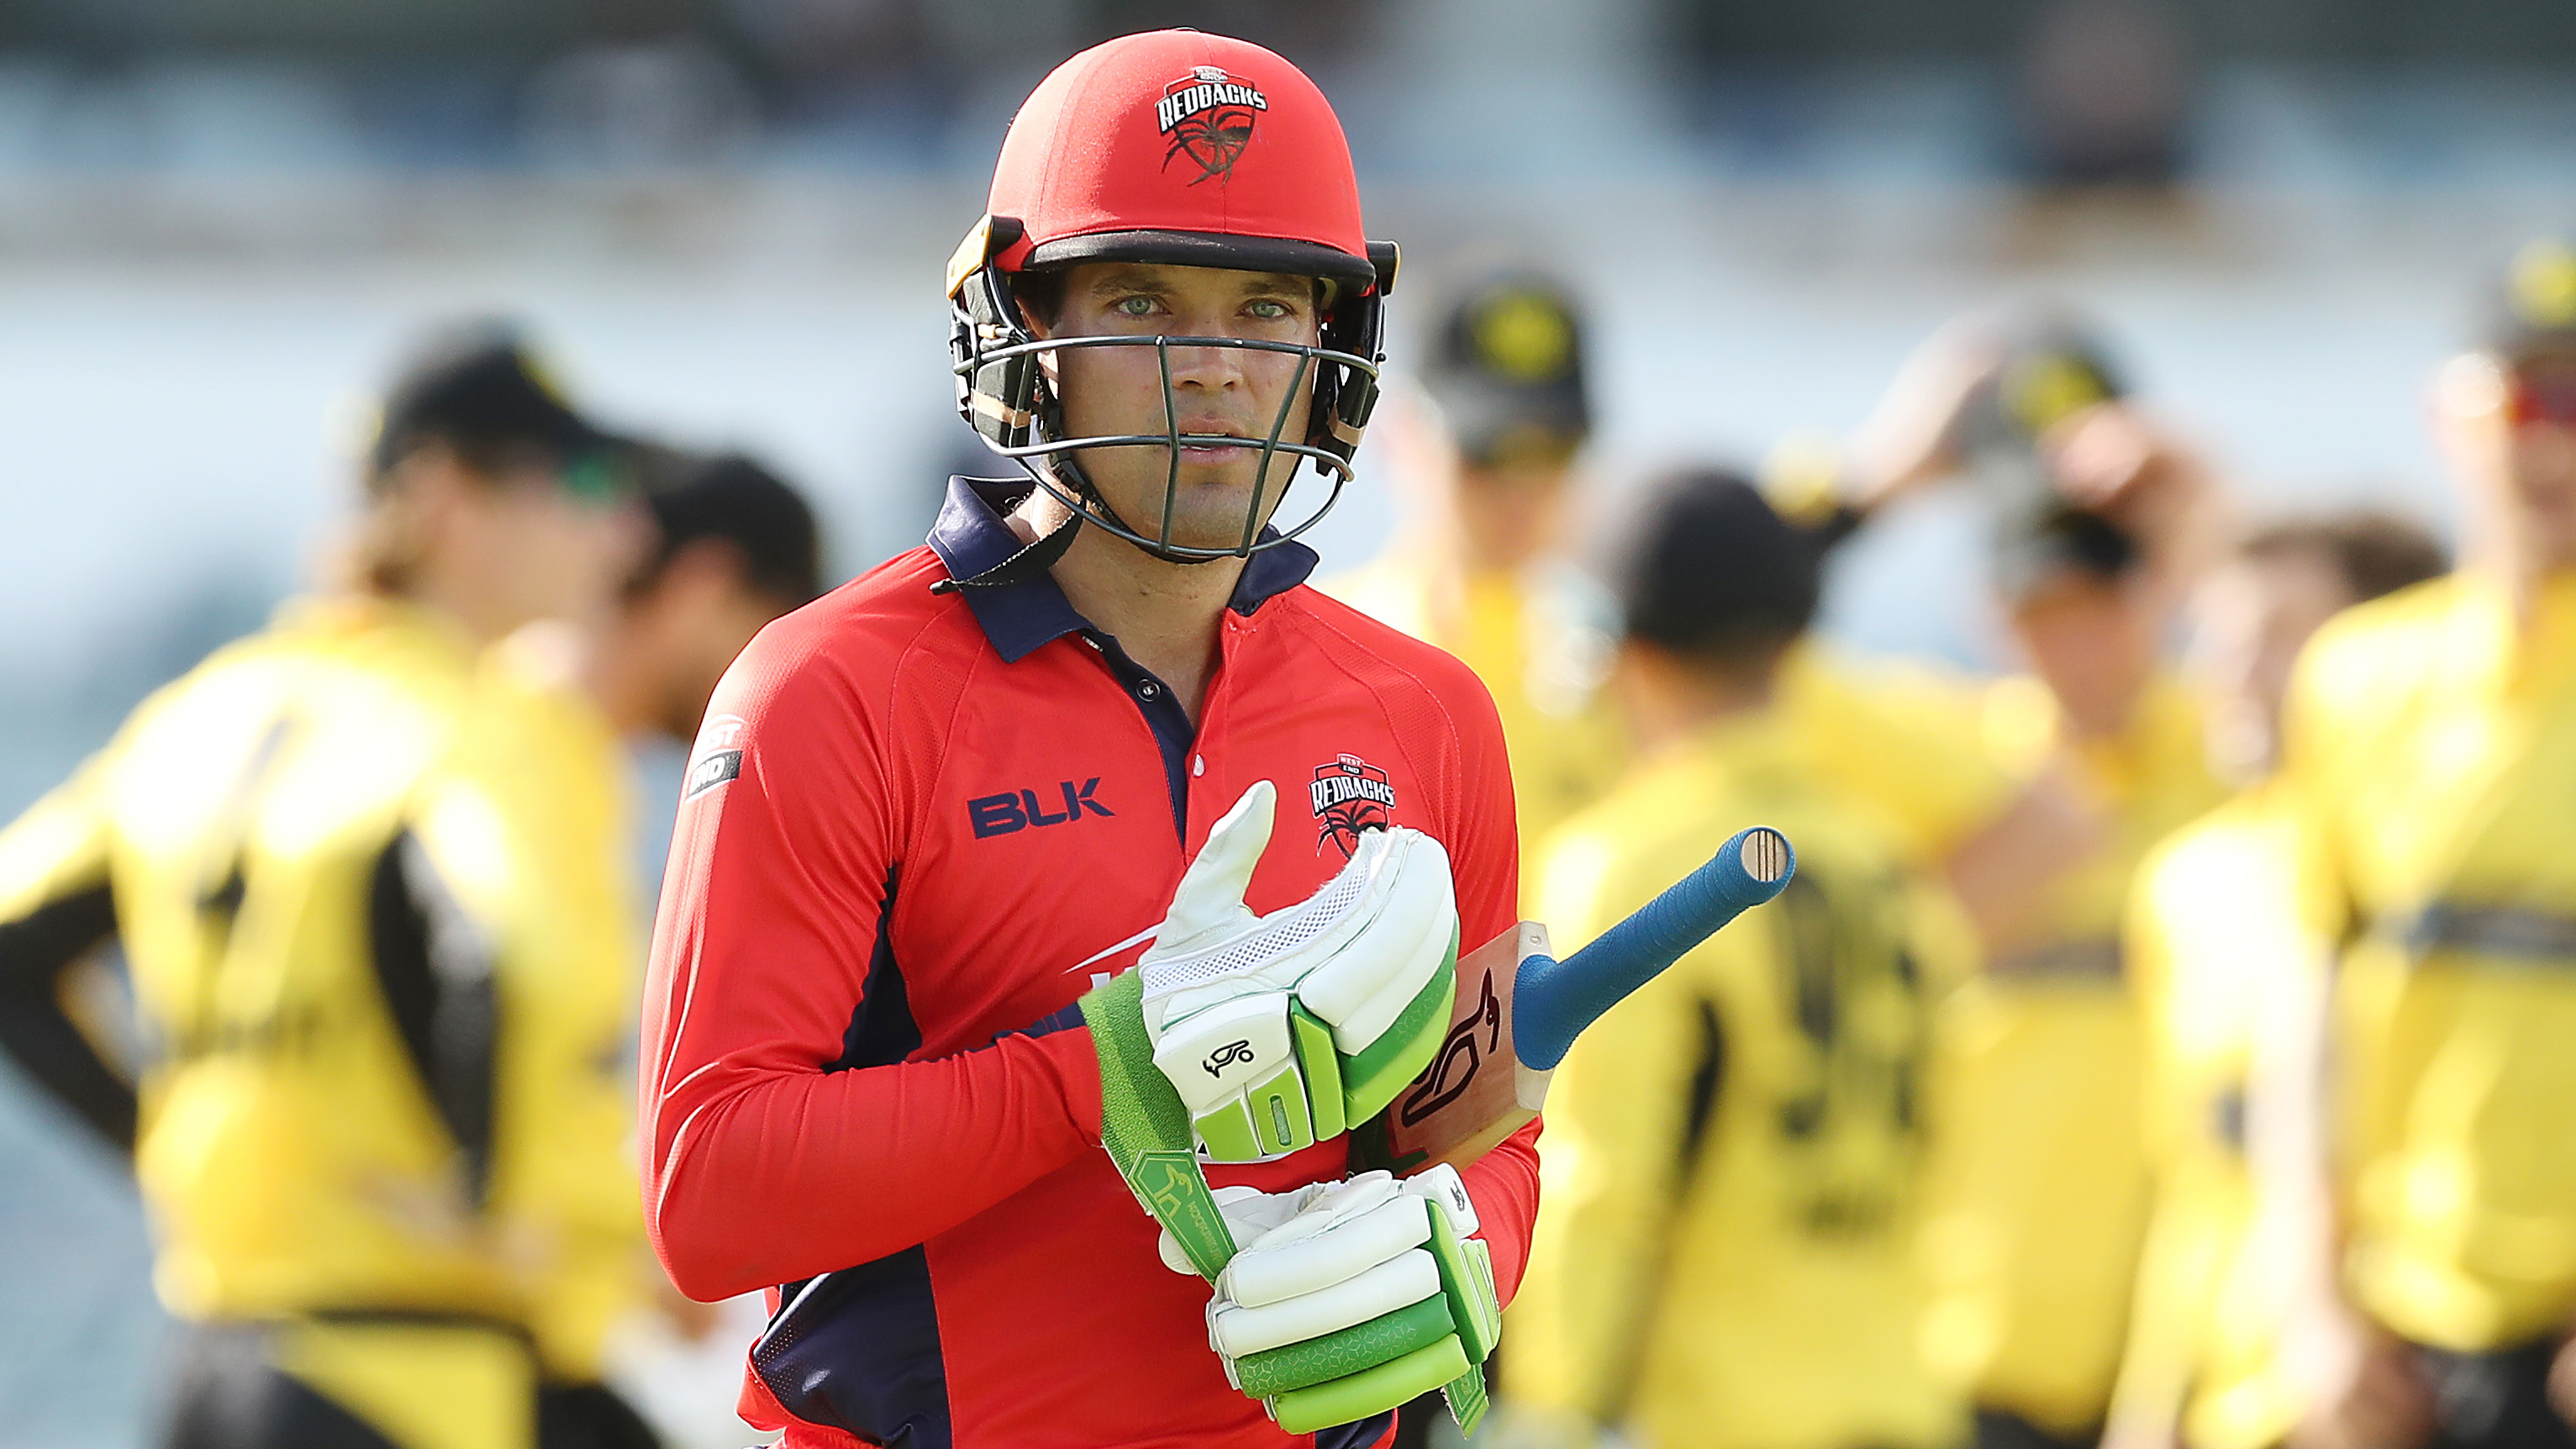 Two run outs in four balls as Carey goes without facing